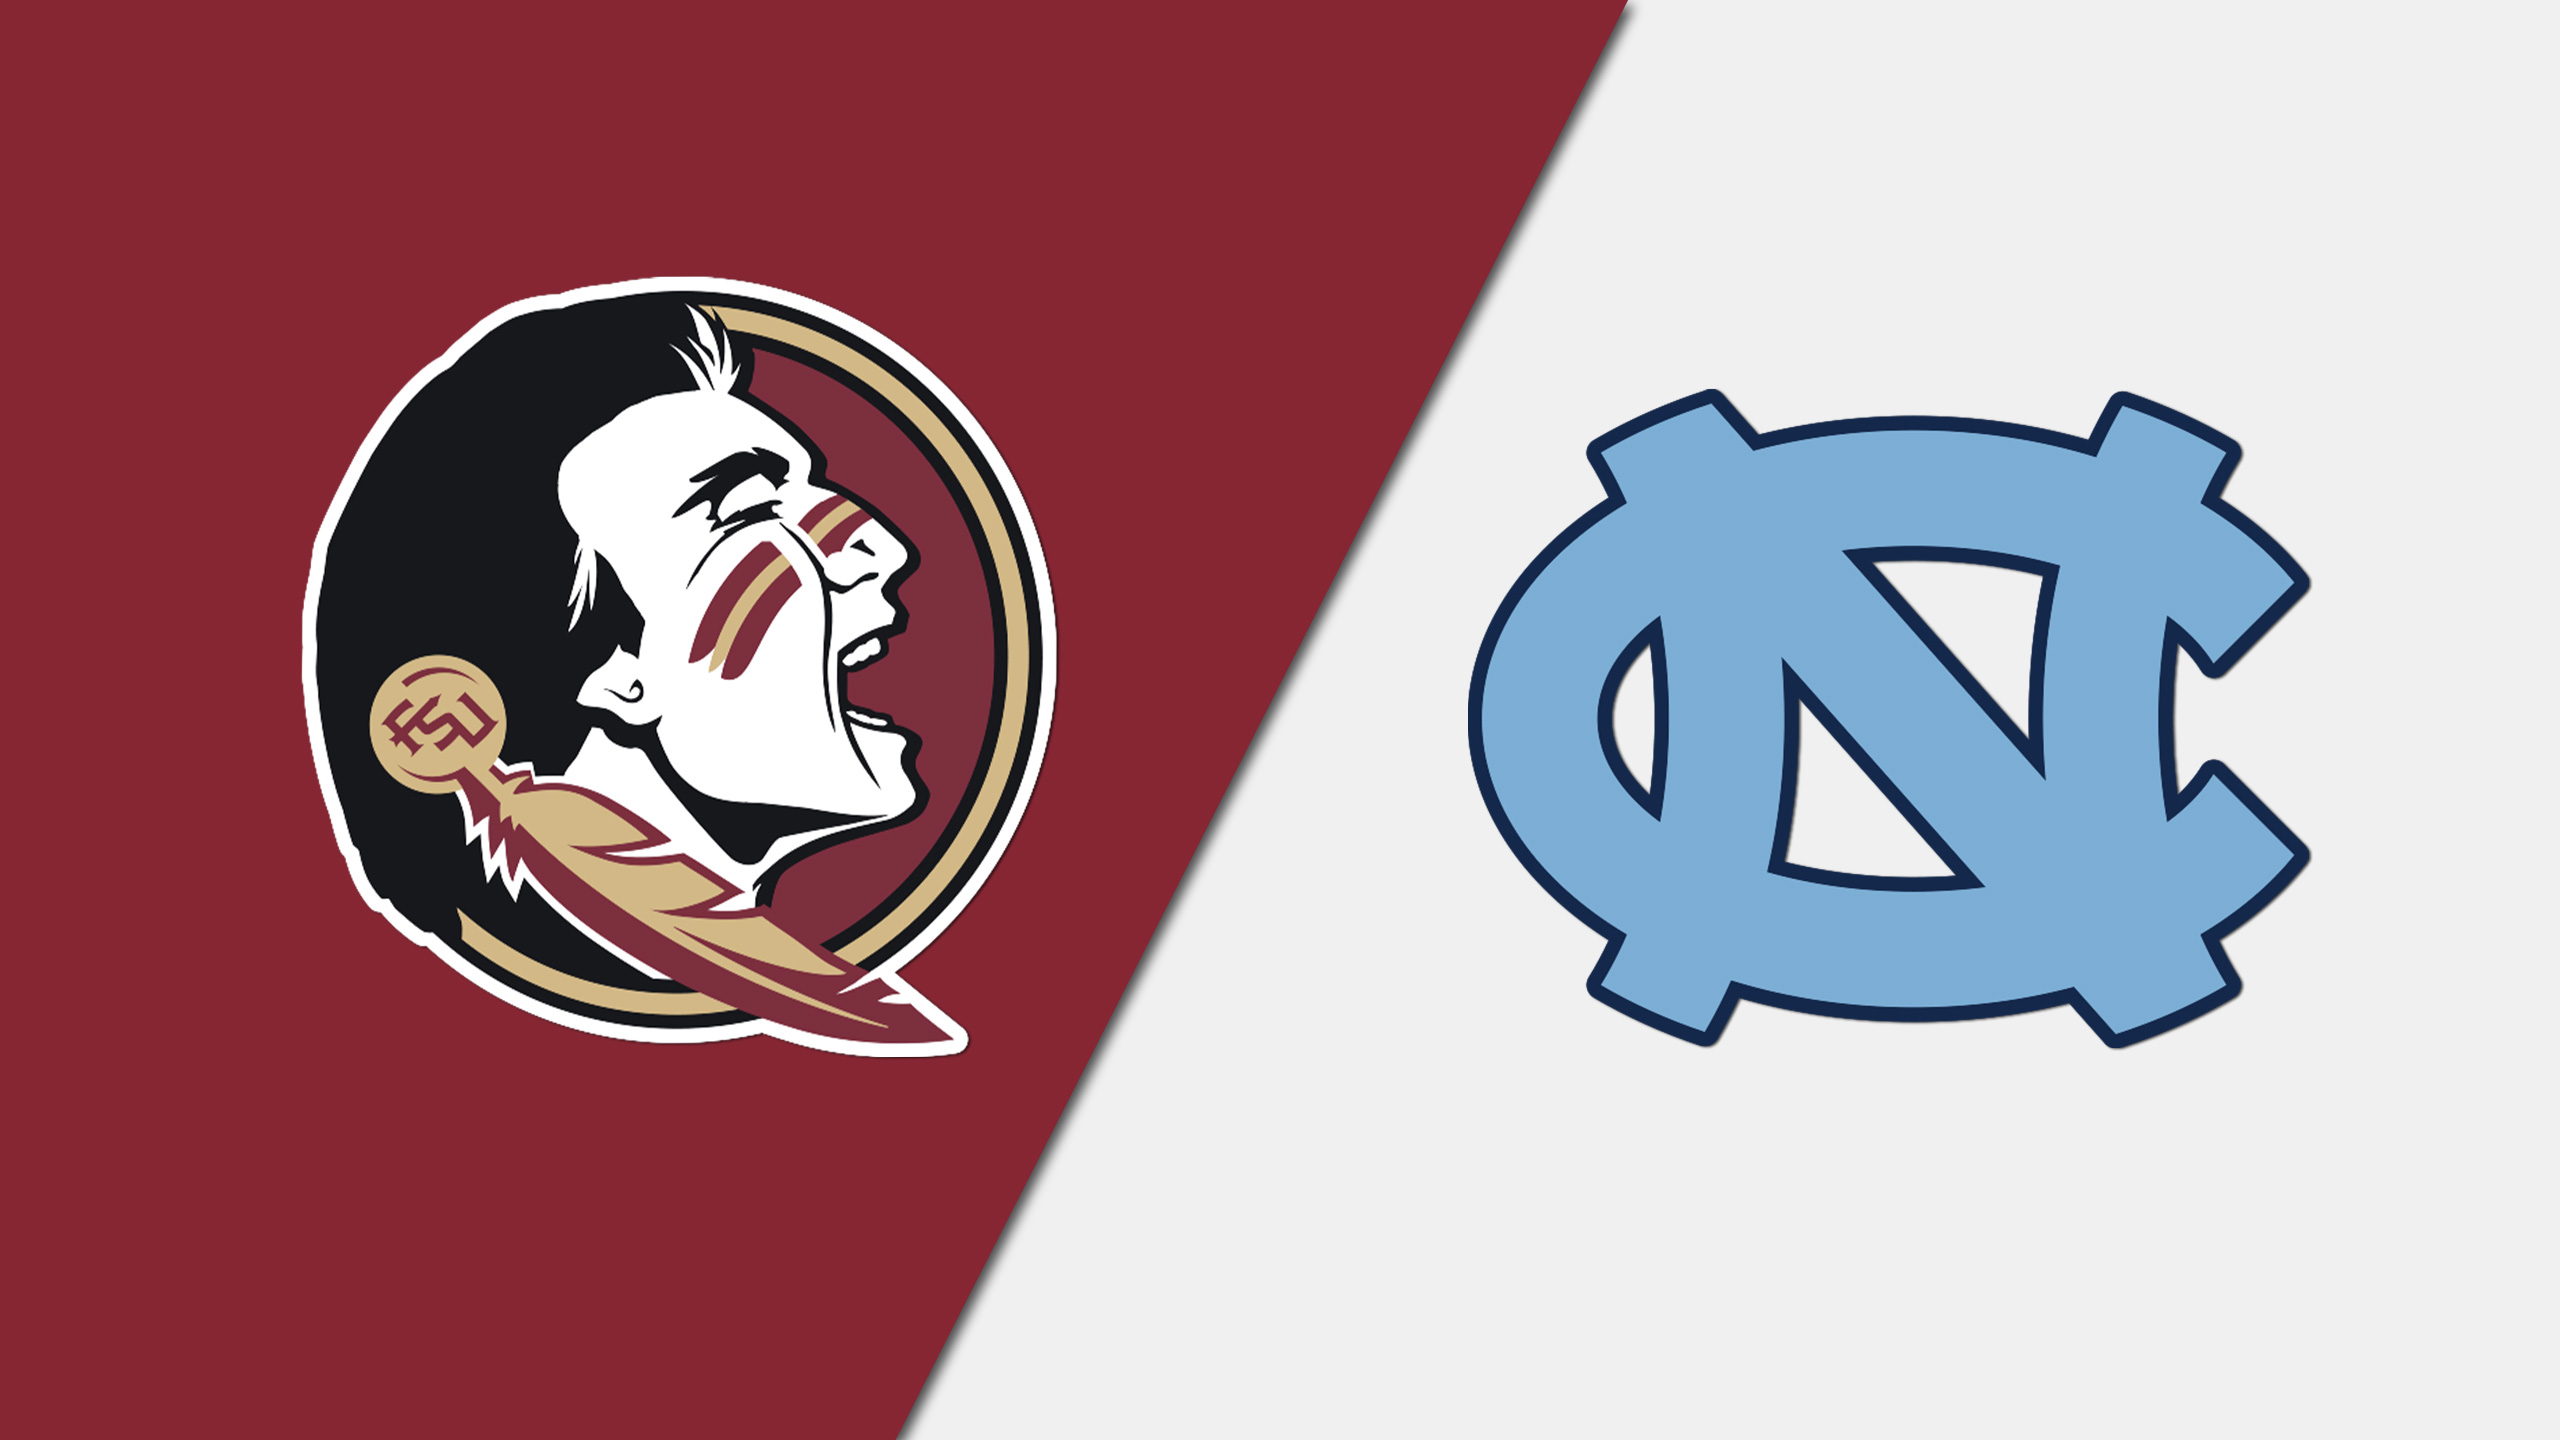 #7 Florida State vs. #3 North Carolina (Championship) (ACC Women's Soccer Championship)